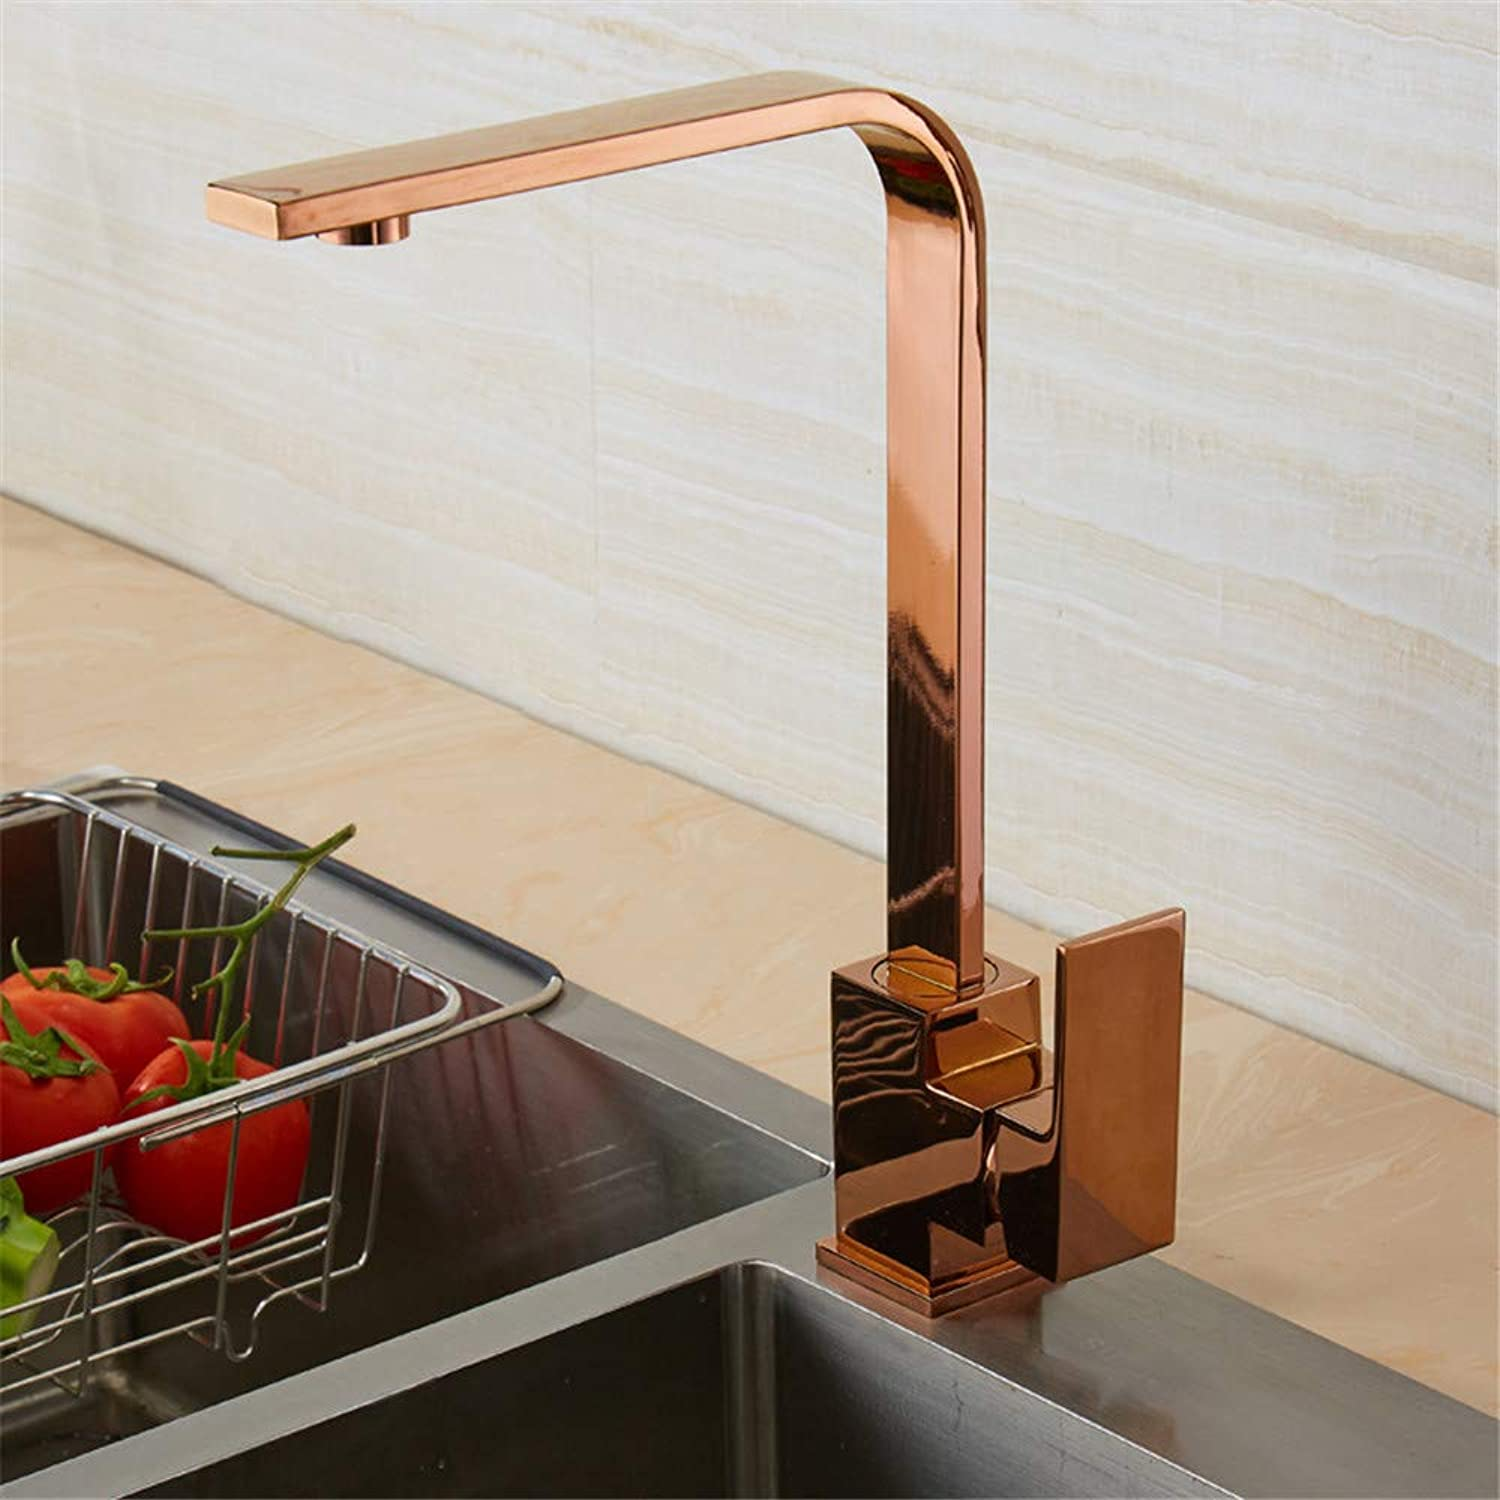 YAWEDA Retro Black Bathroom Basin Faucet Hot and Cold Water Mixer All Copper Simple Swivel Kitchen Sink Faucet with Aerator 7 Square Single Handle,pink gold